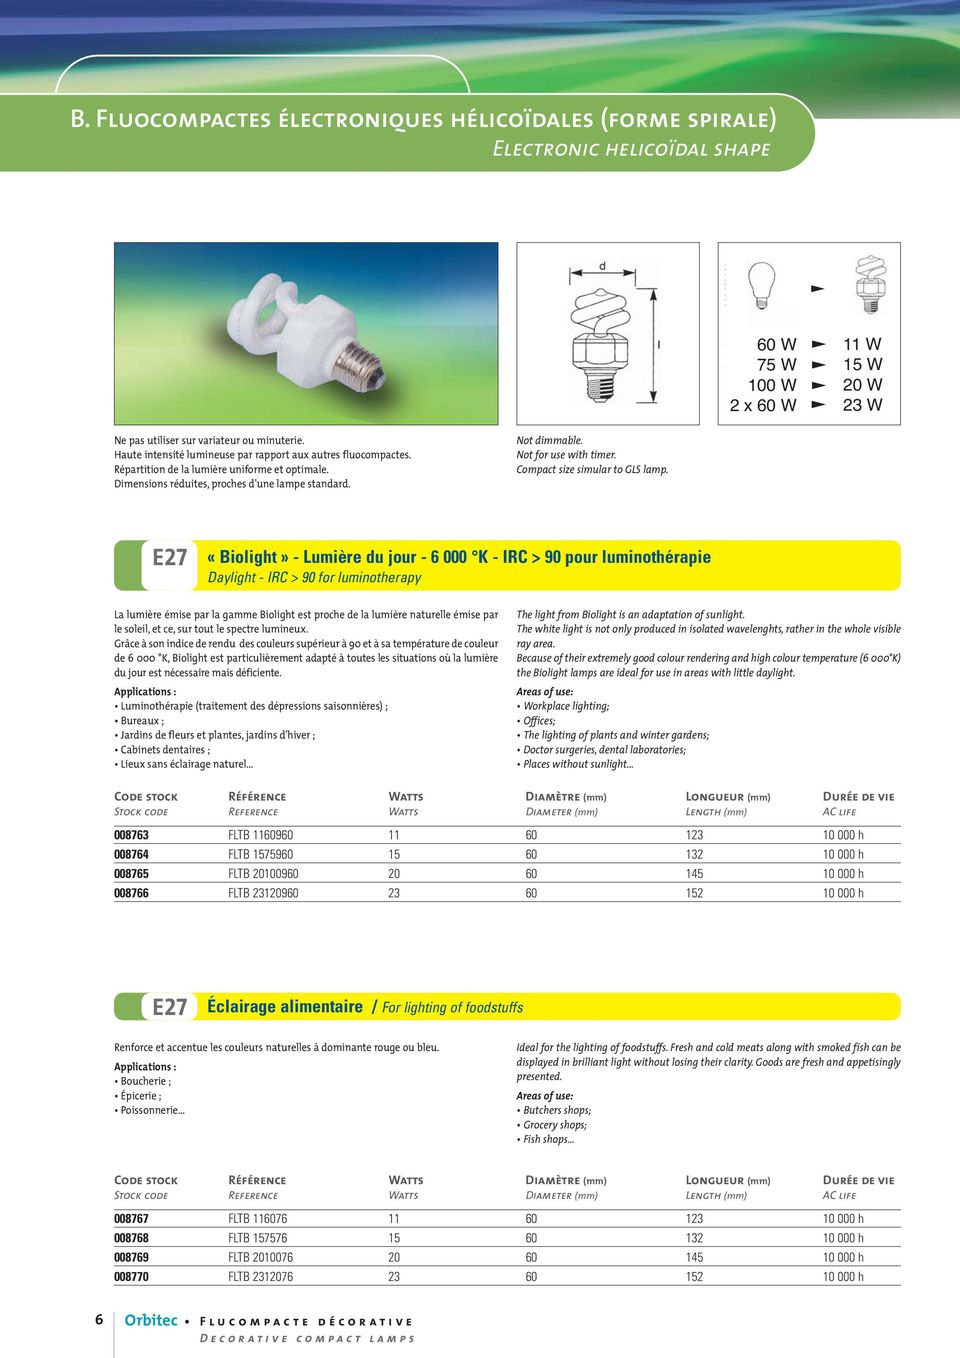 Compact size simular to GLS lamp.